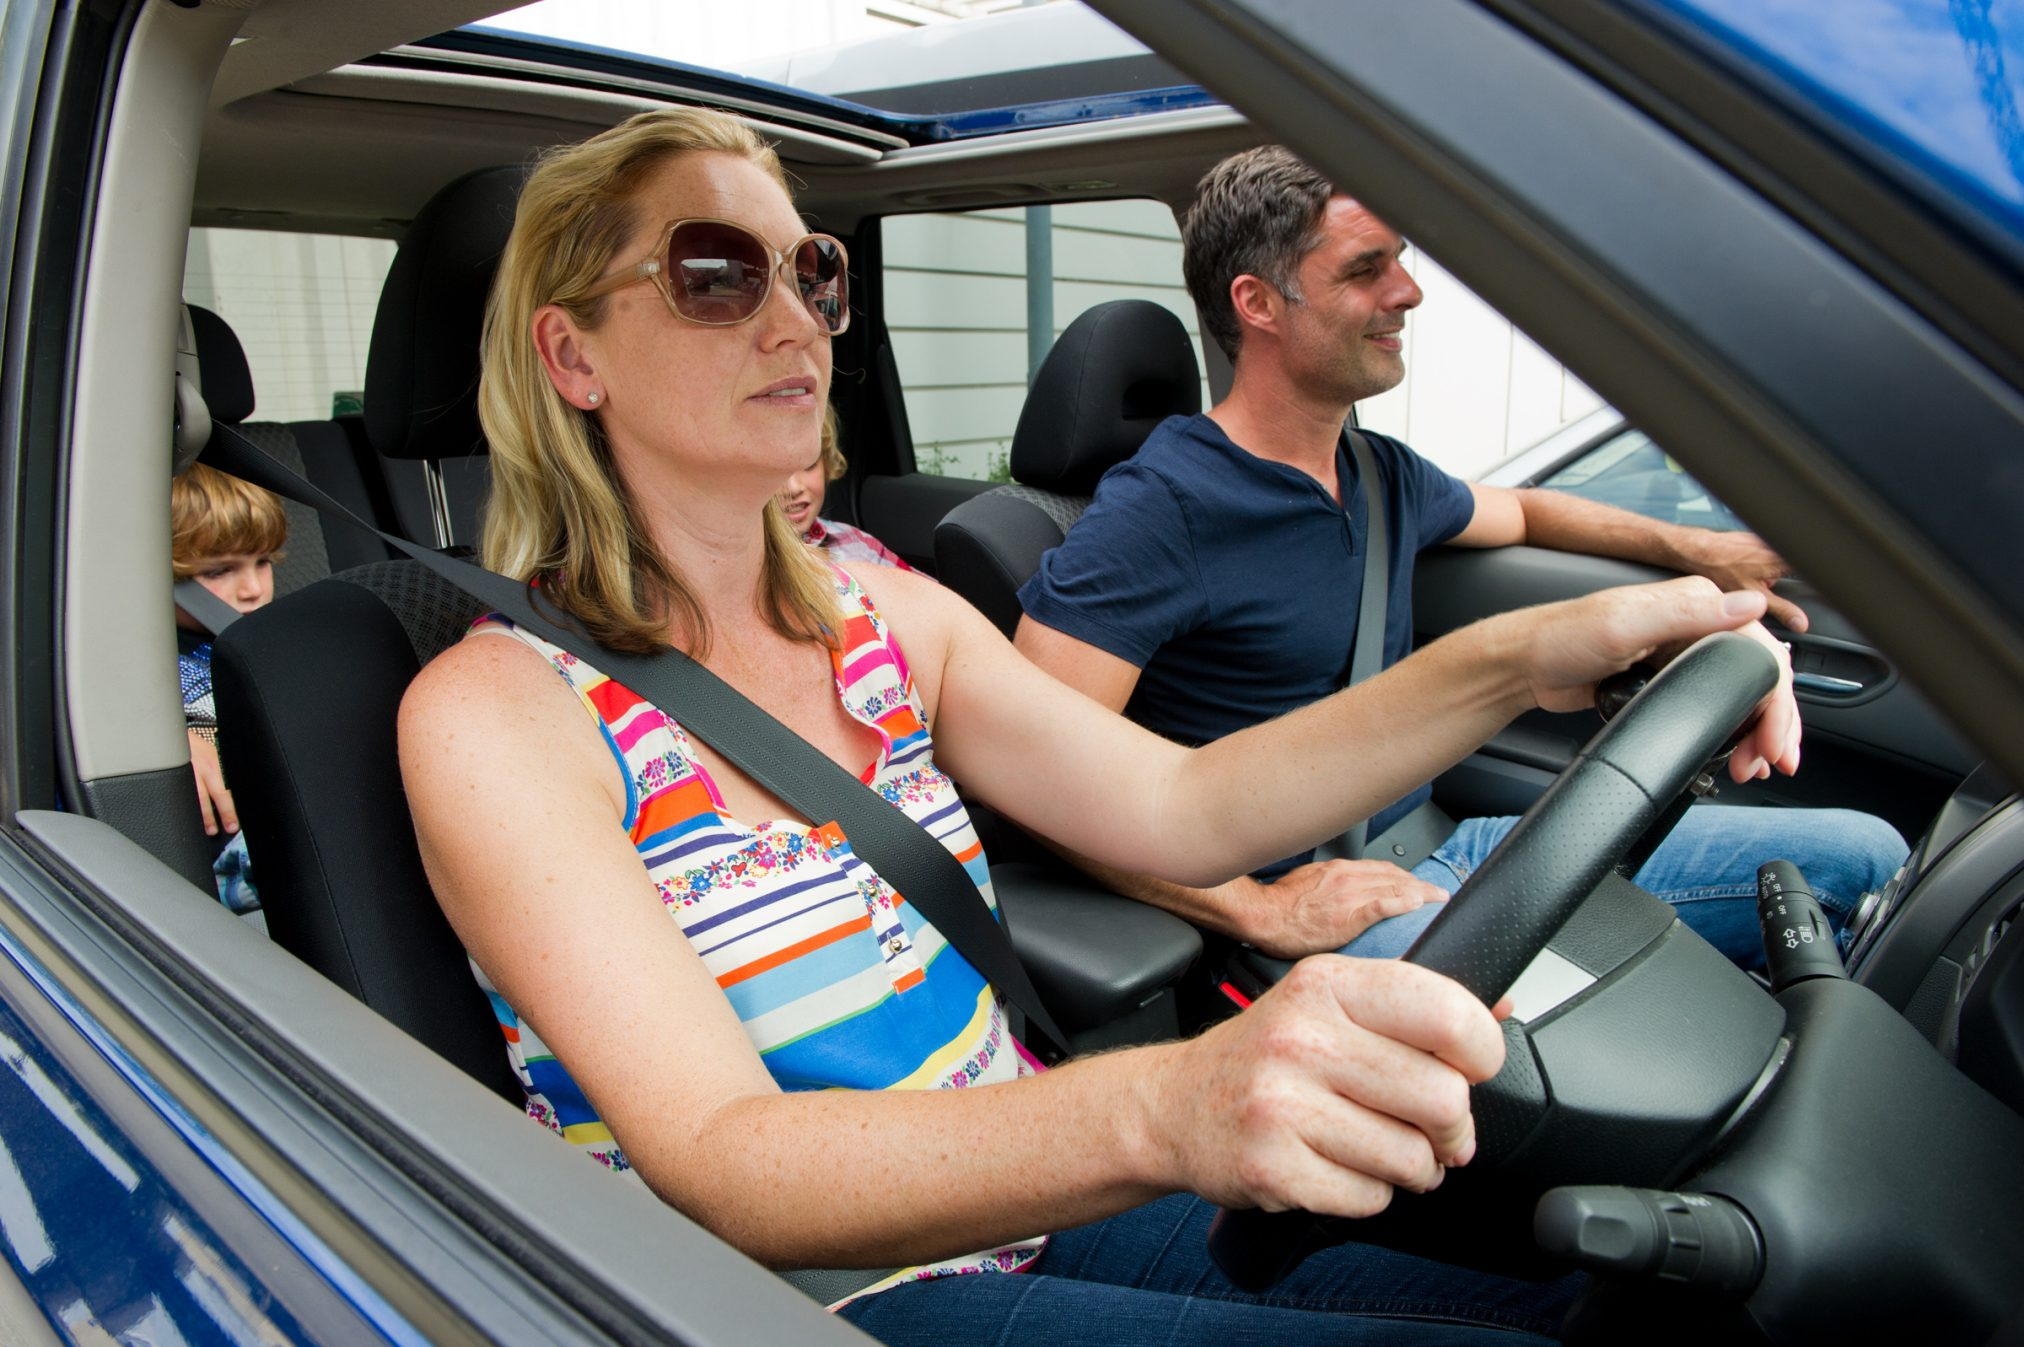 parents kids in car drive through Credit: Professional Images